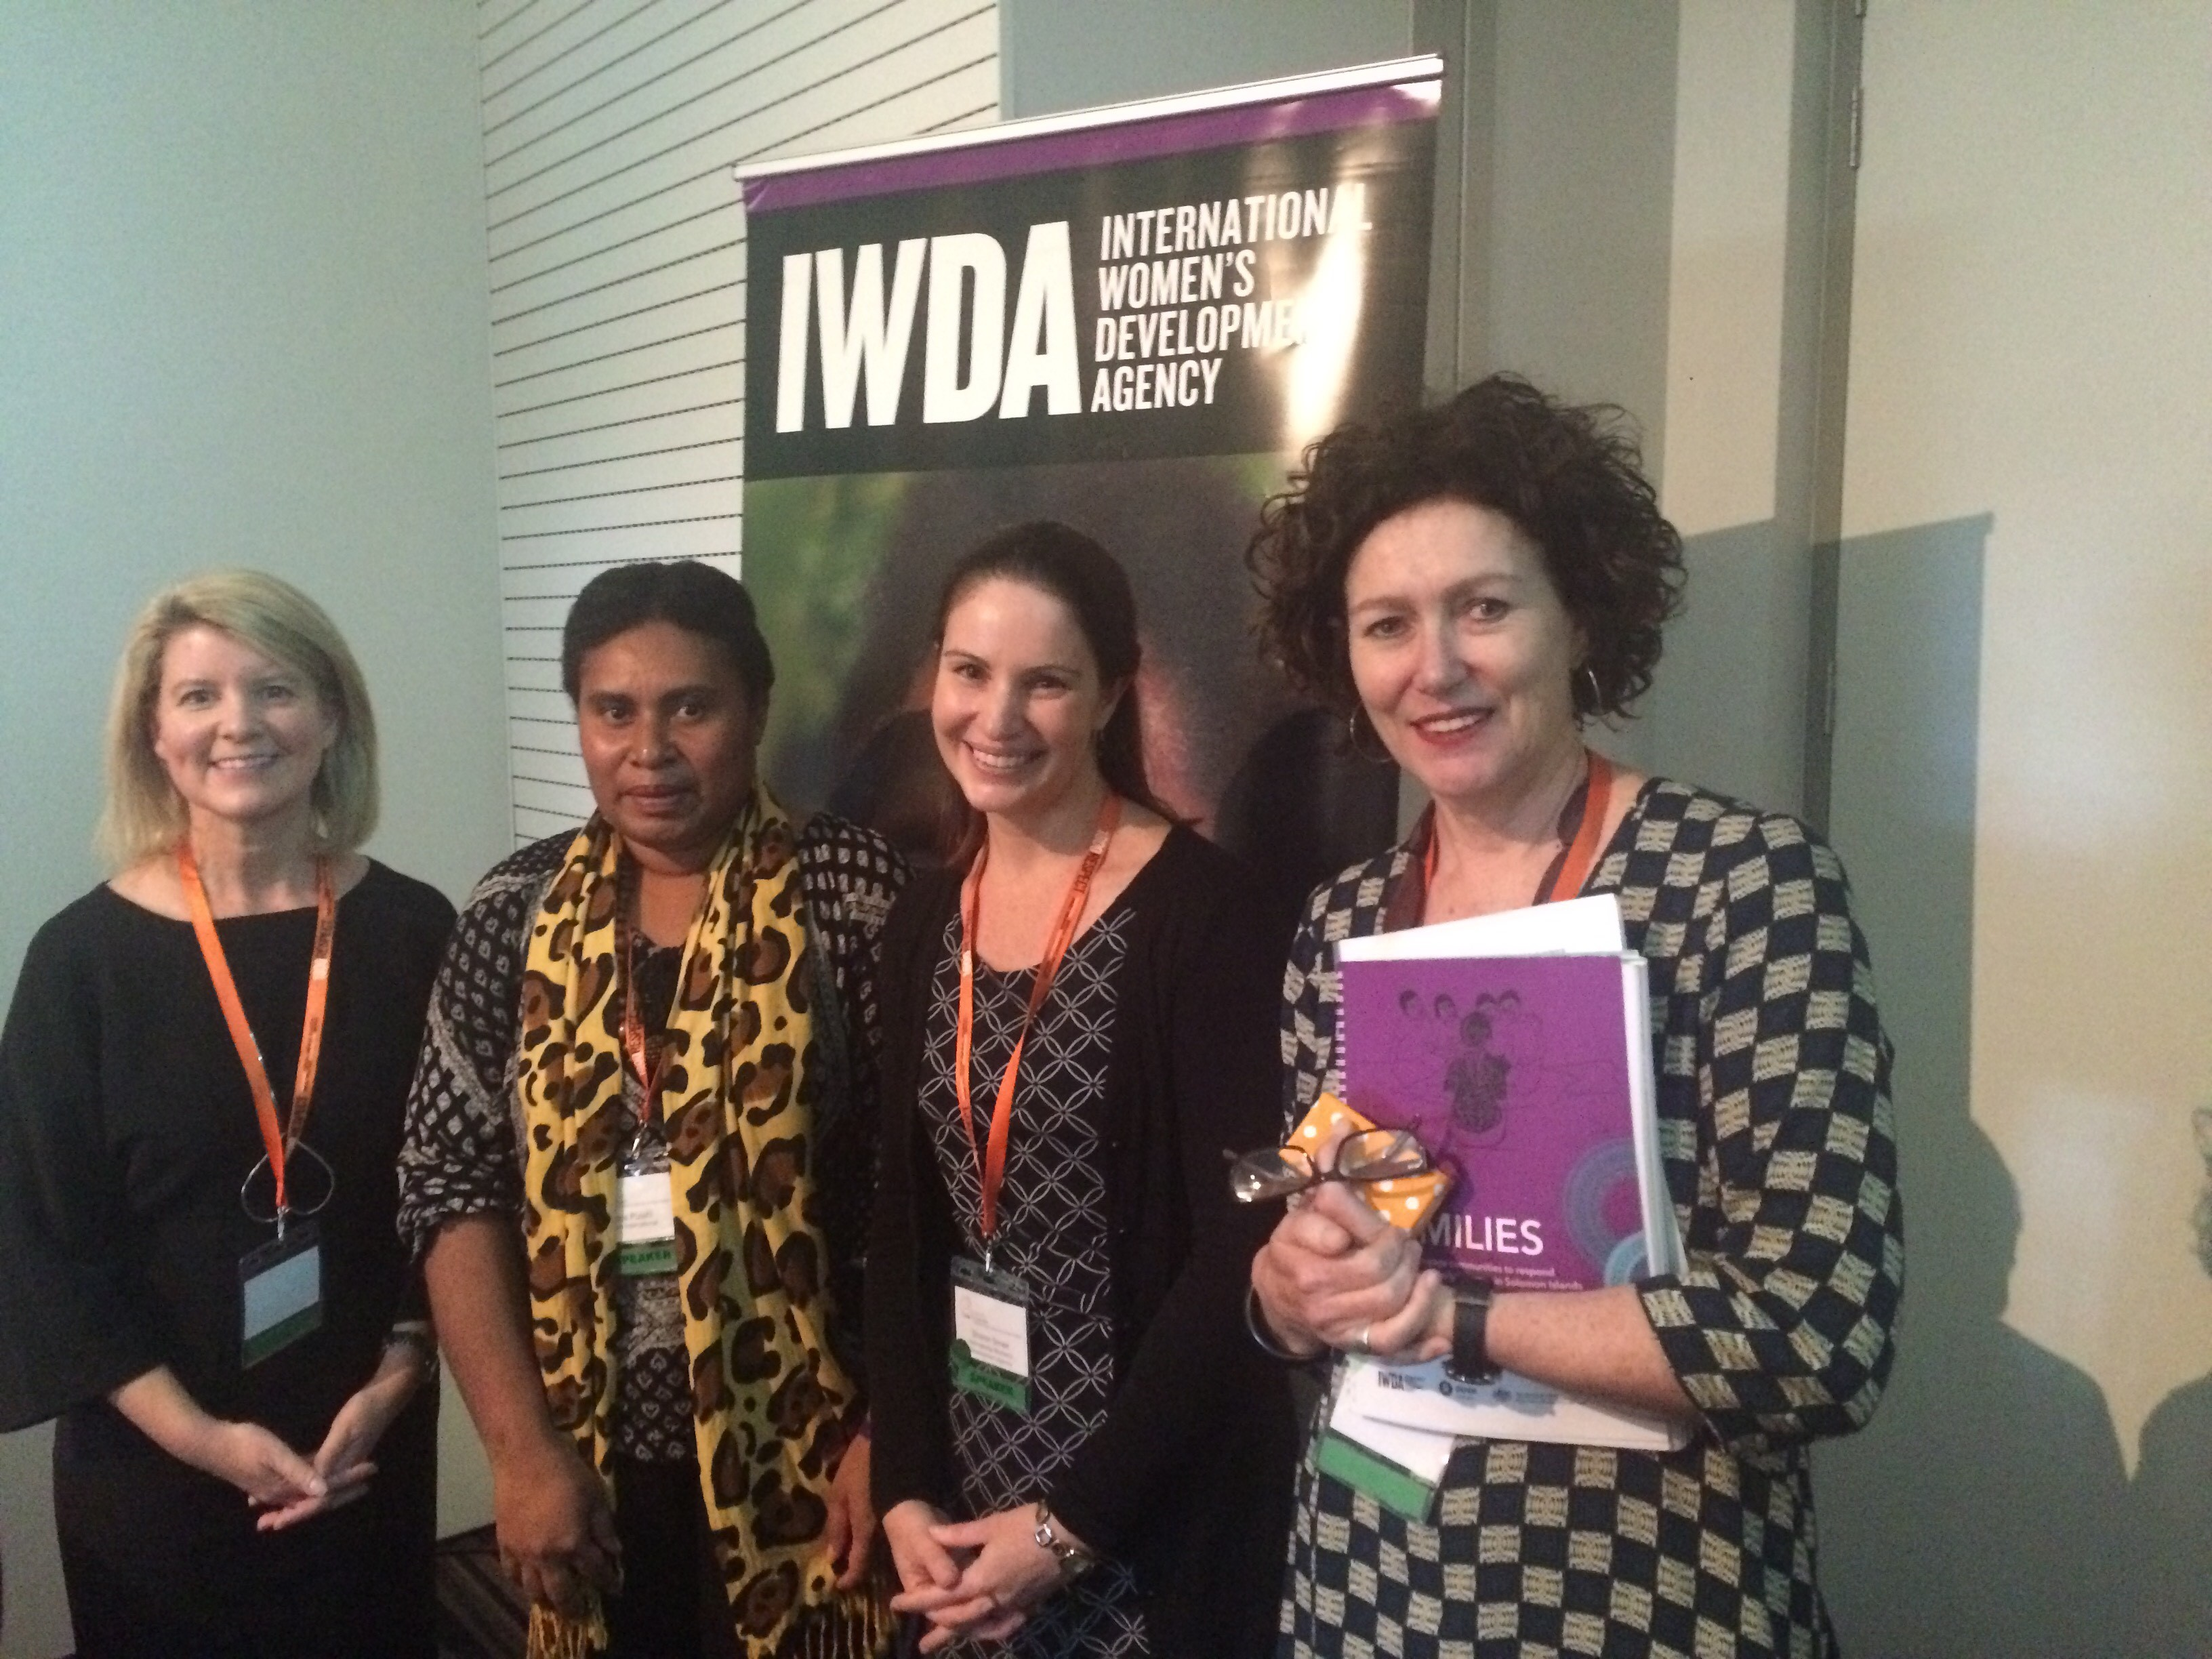 Natasha Stott Despoja, Ambassador for Women and Girls, Doris Puiahi from Oxfam Safe Families project in Solomon Islands, and IWDA's Sharon Smee and Felicity Rourke. Photo: Steph Lusby